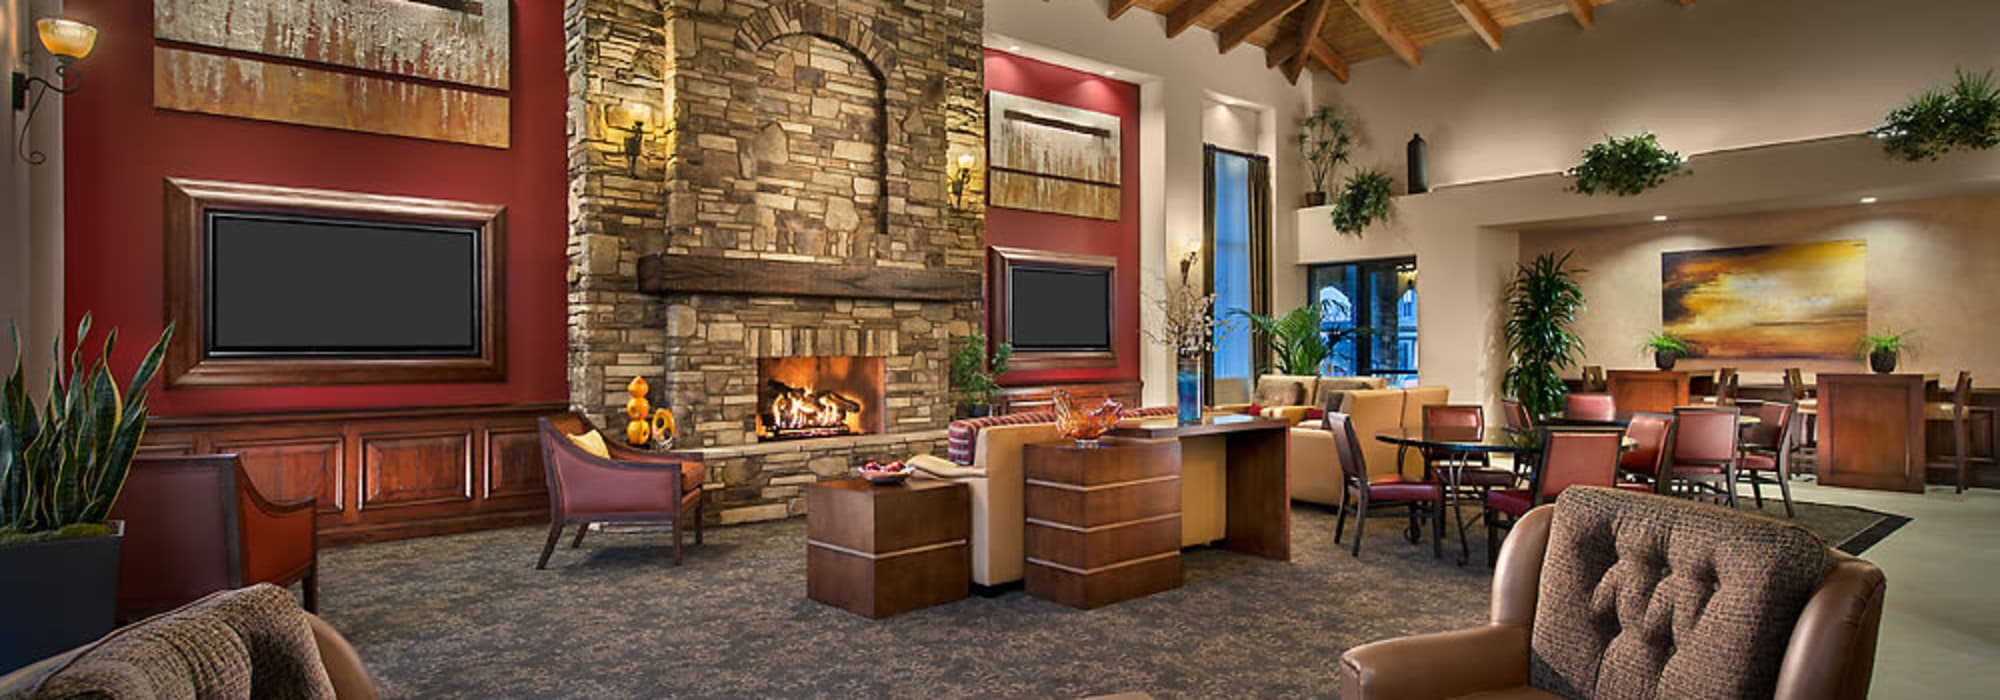 Spacious clubhouse to entertain friends and family at San Norterra in Phoenix, Arizona